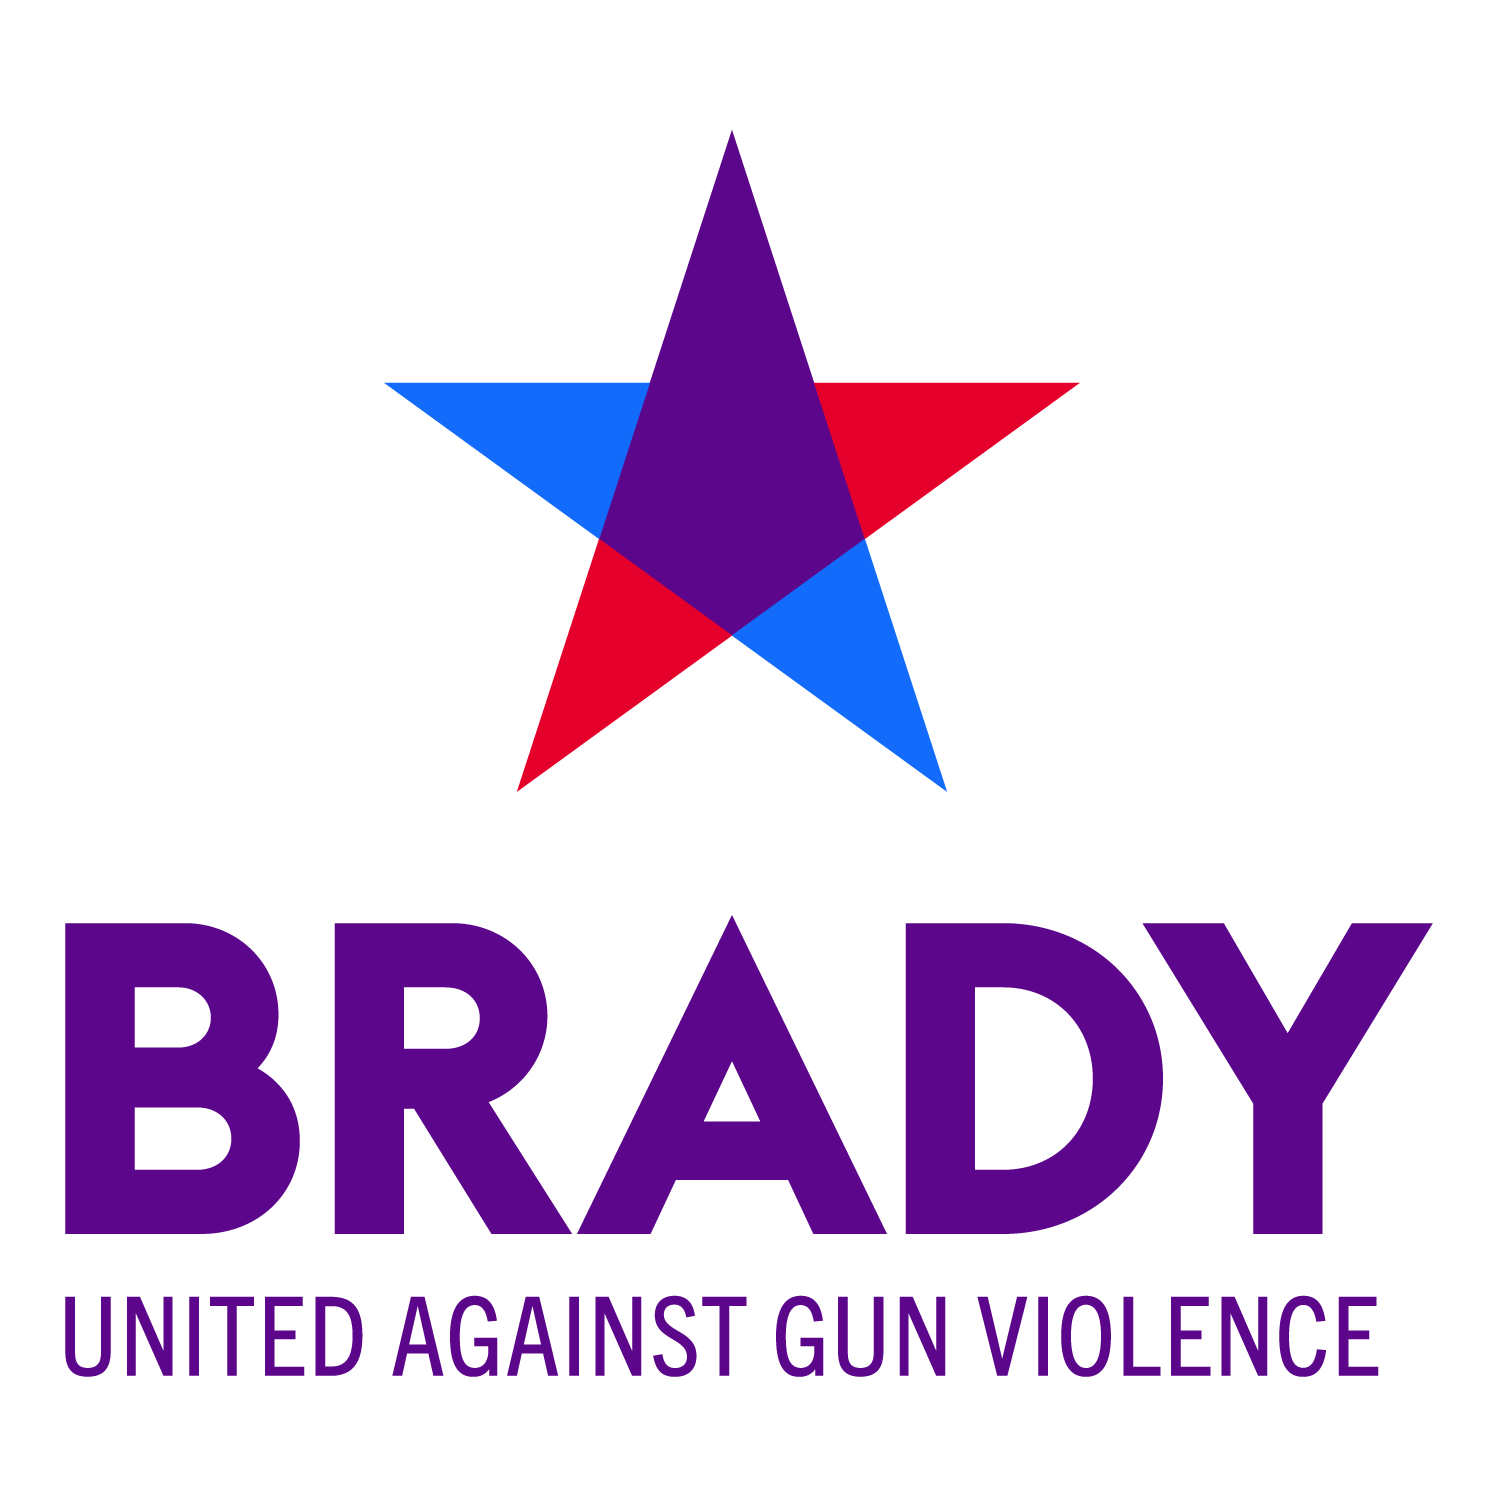 Brady, United Against Gun Violence logo